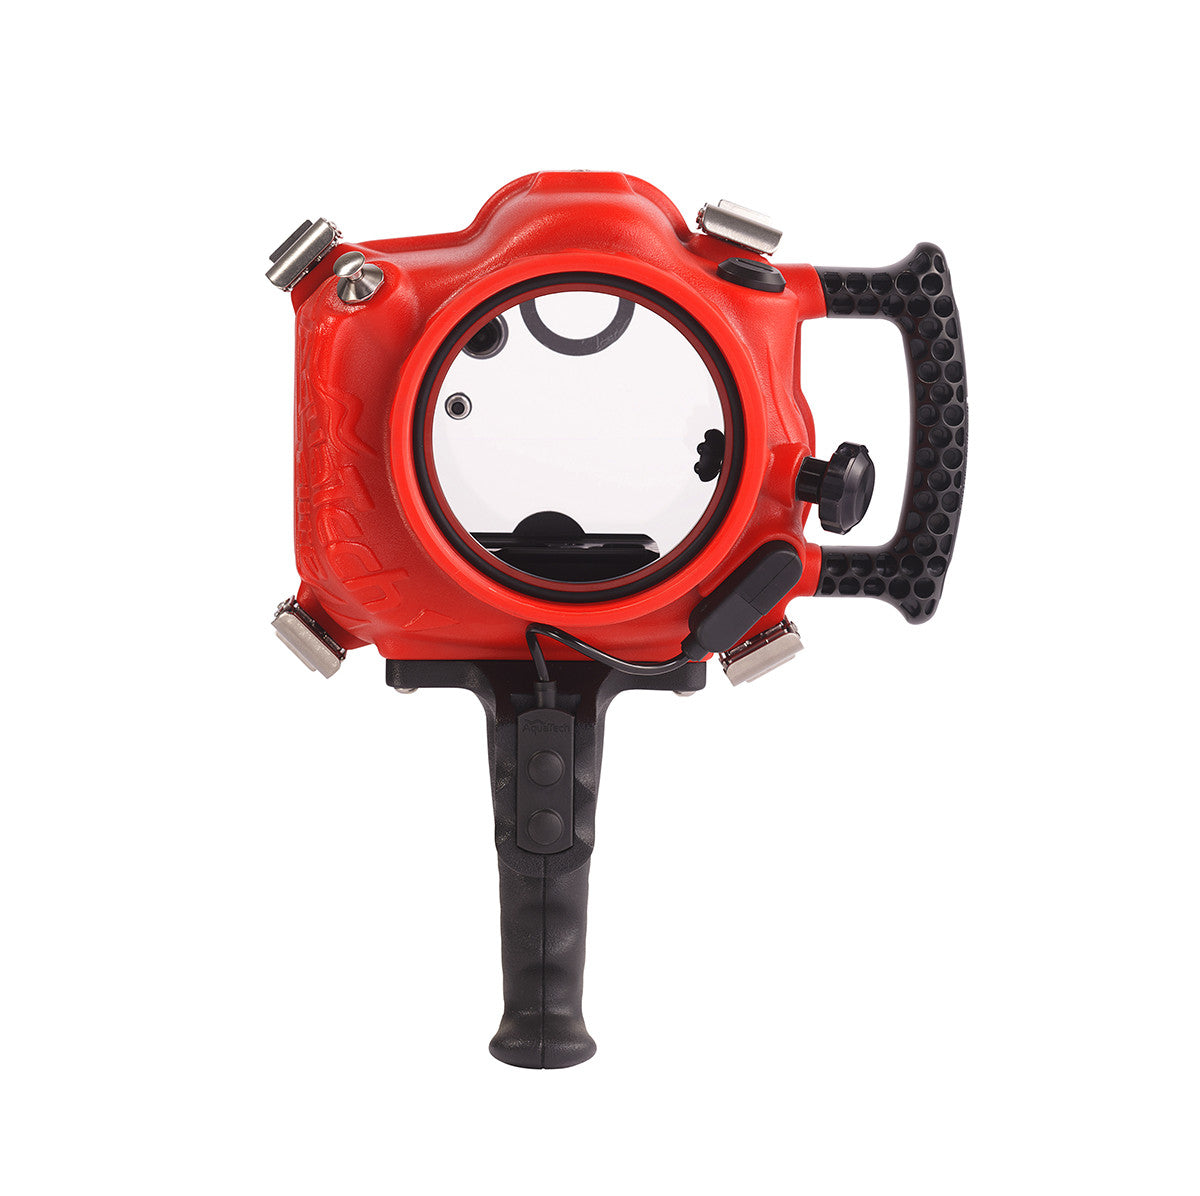 Elite 6D Water Housing with Pistol Grip front view